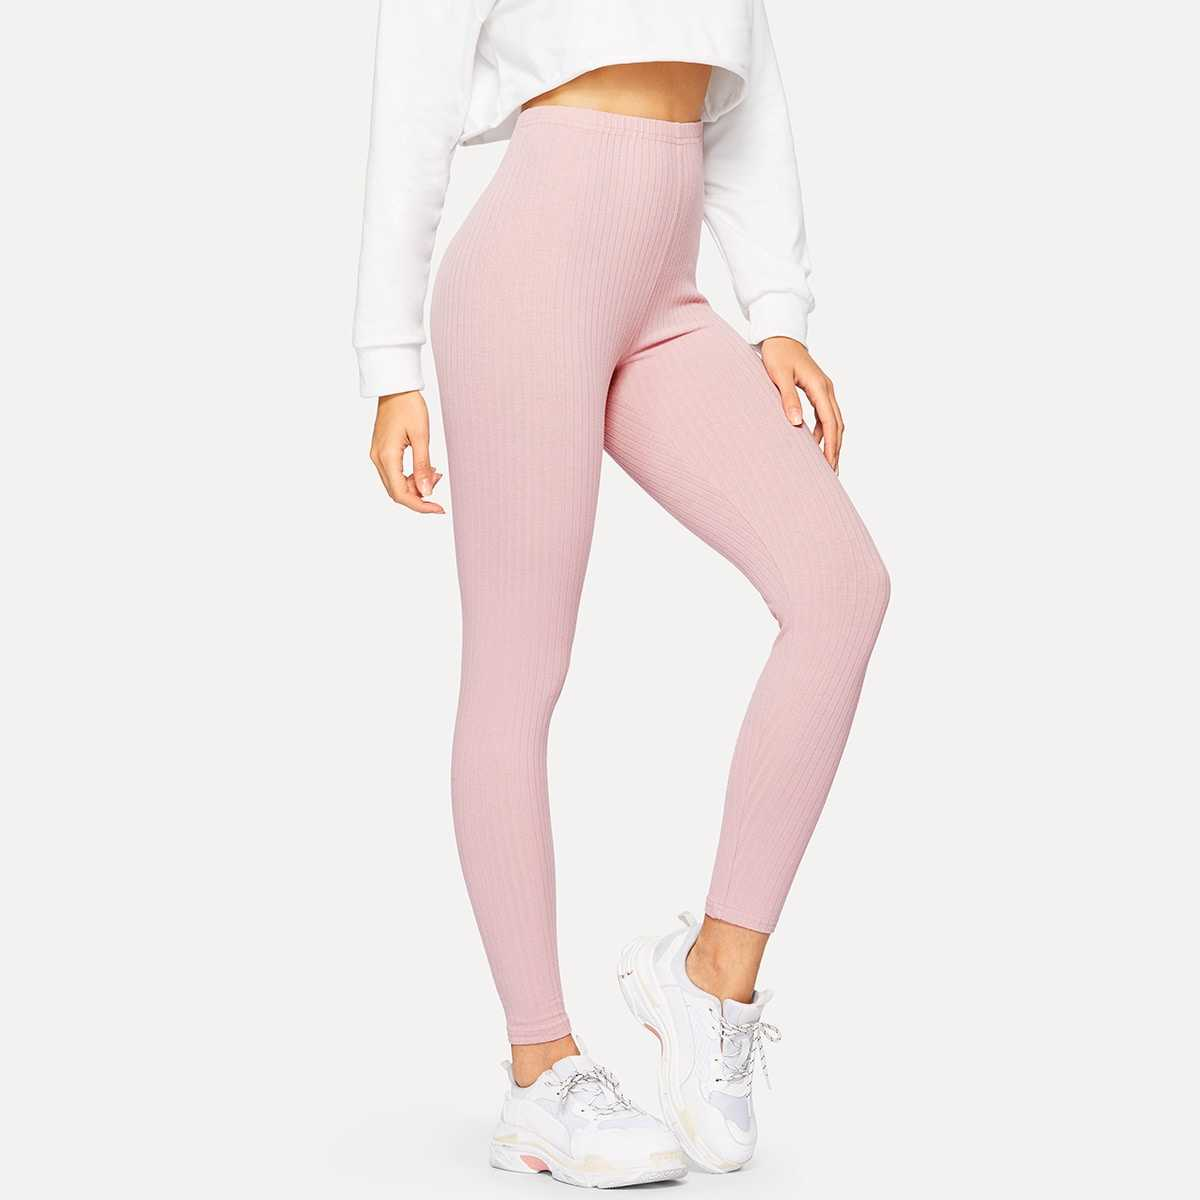 High Waist Ribbed Knit Solid Leggings in Pink Pastel by ROMWE on GOOFASH